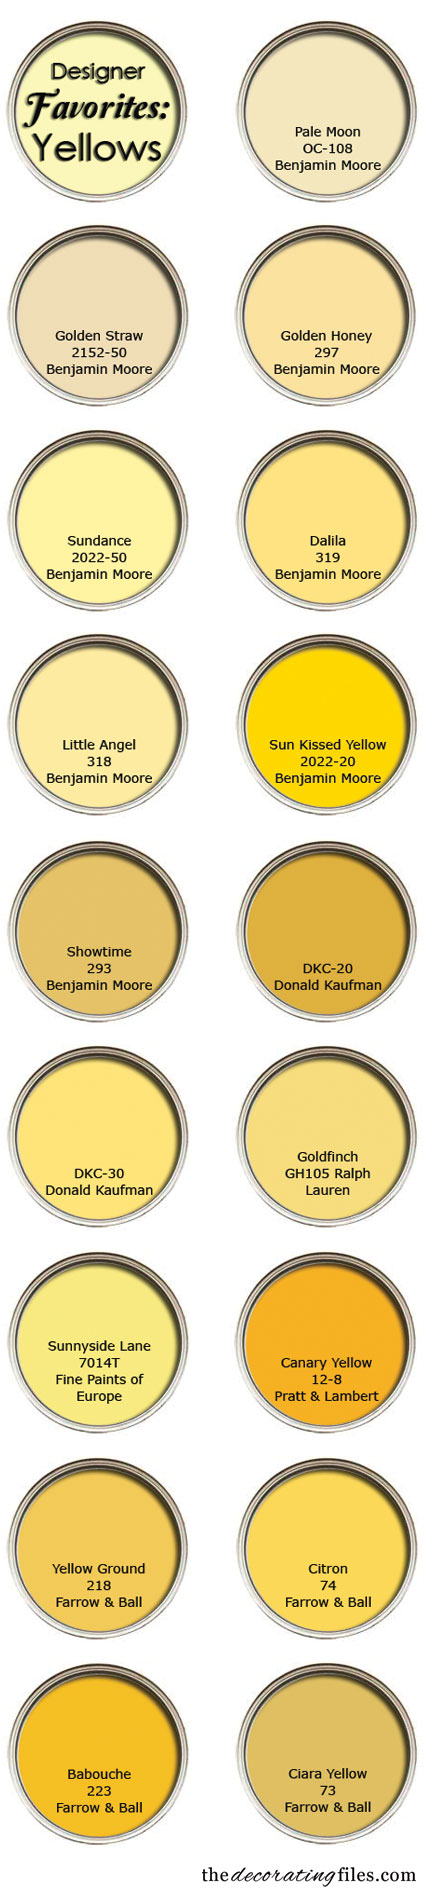 Wall Paint Yellow Shades : Yellow Paint Colors: Favorite Picks from Designers